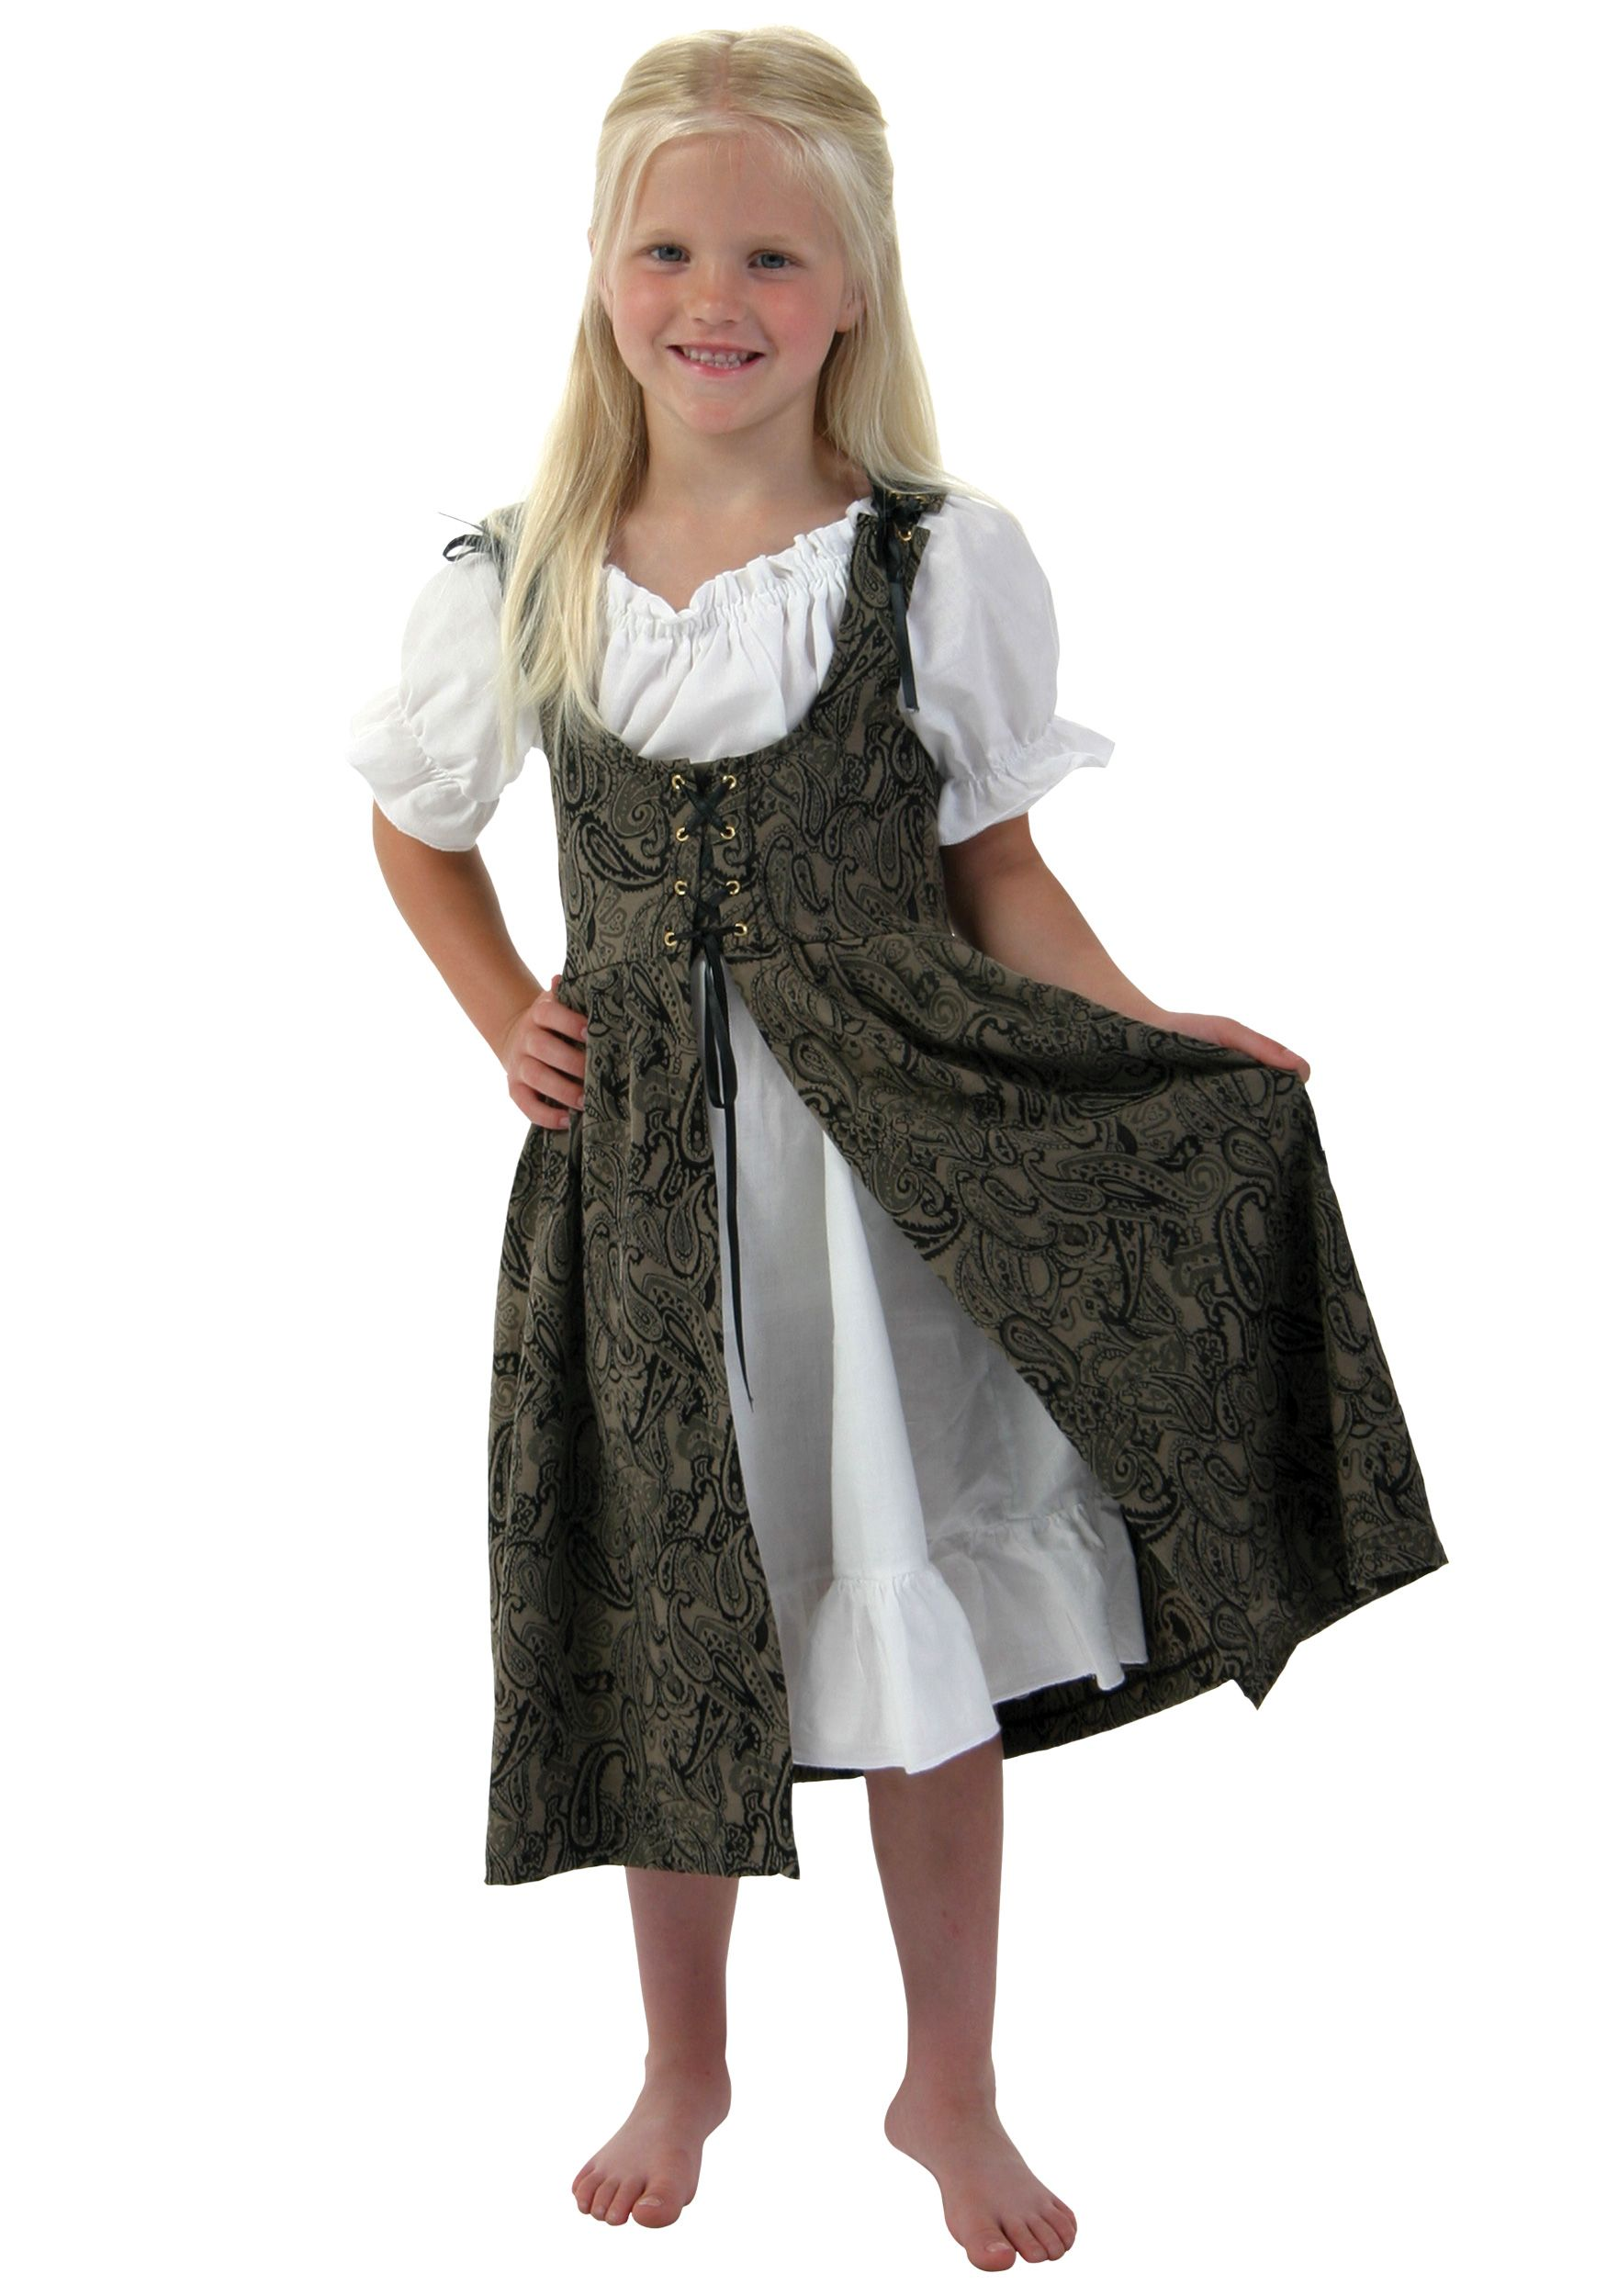 Girls Renaissance Faire Costume | Children costumes, Renaissance ...